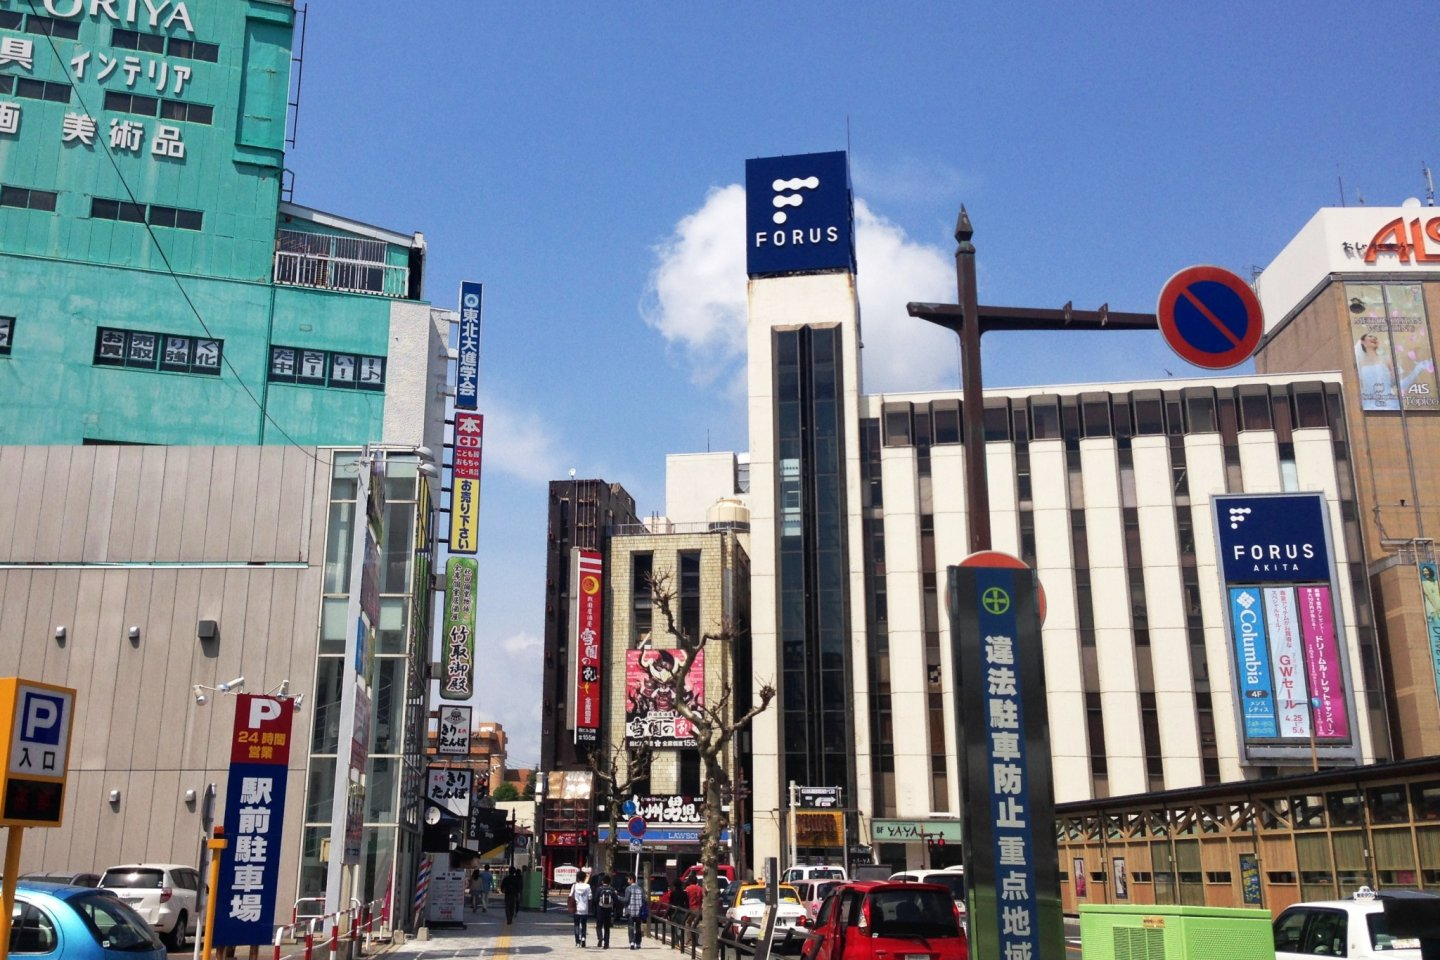 Animate Anime and Comic Store is located in the city square west of Akita Station